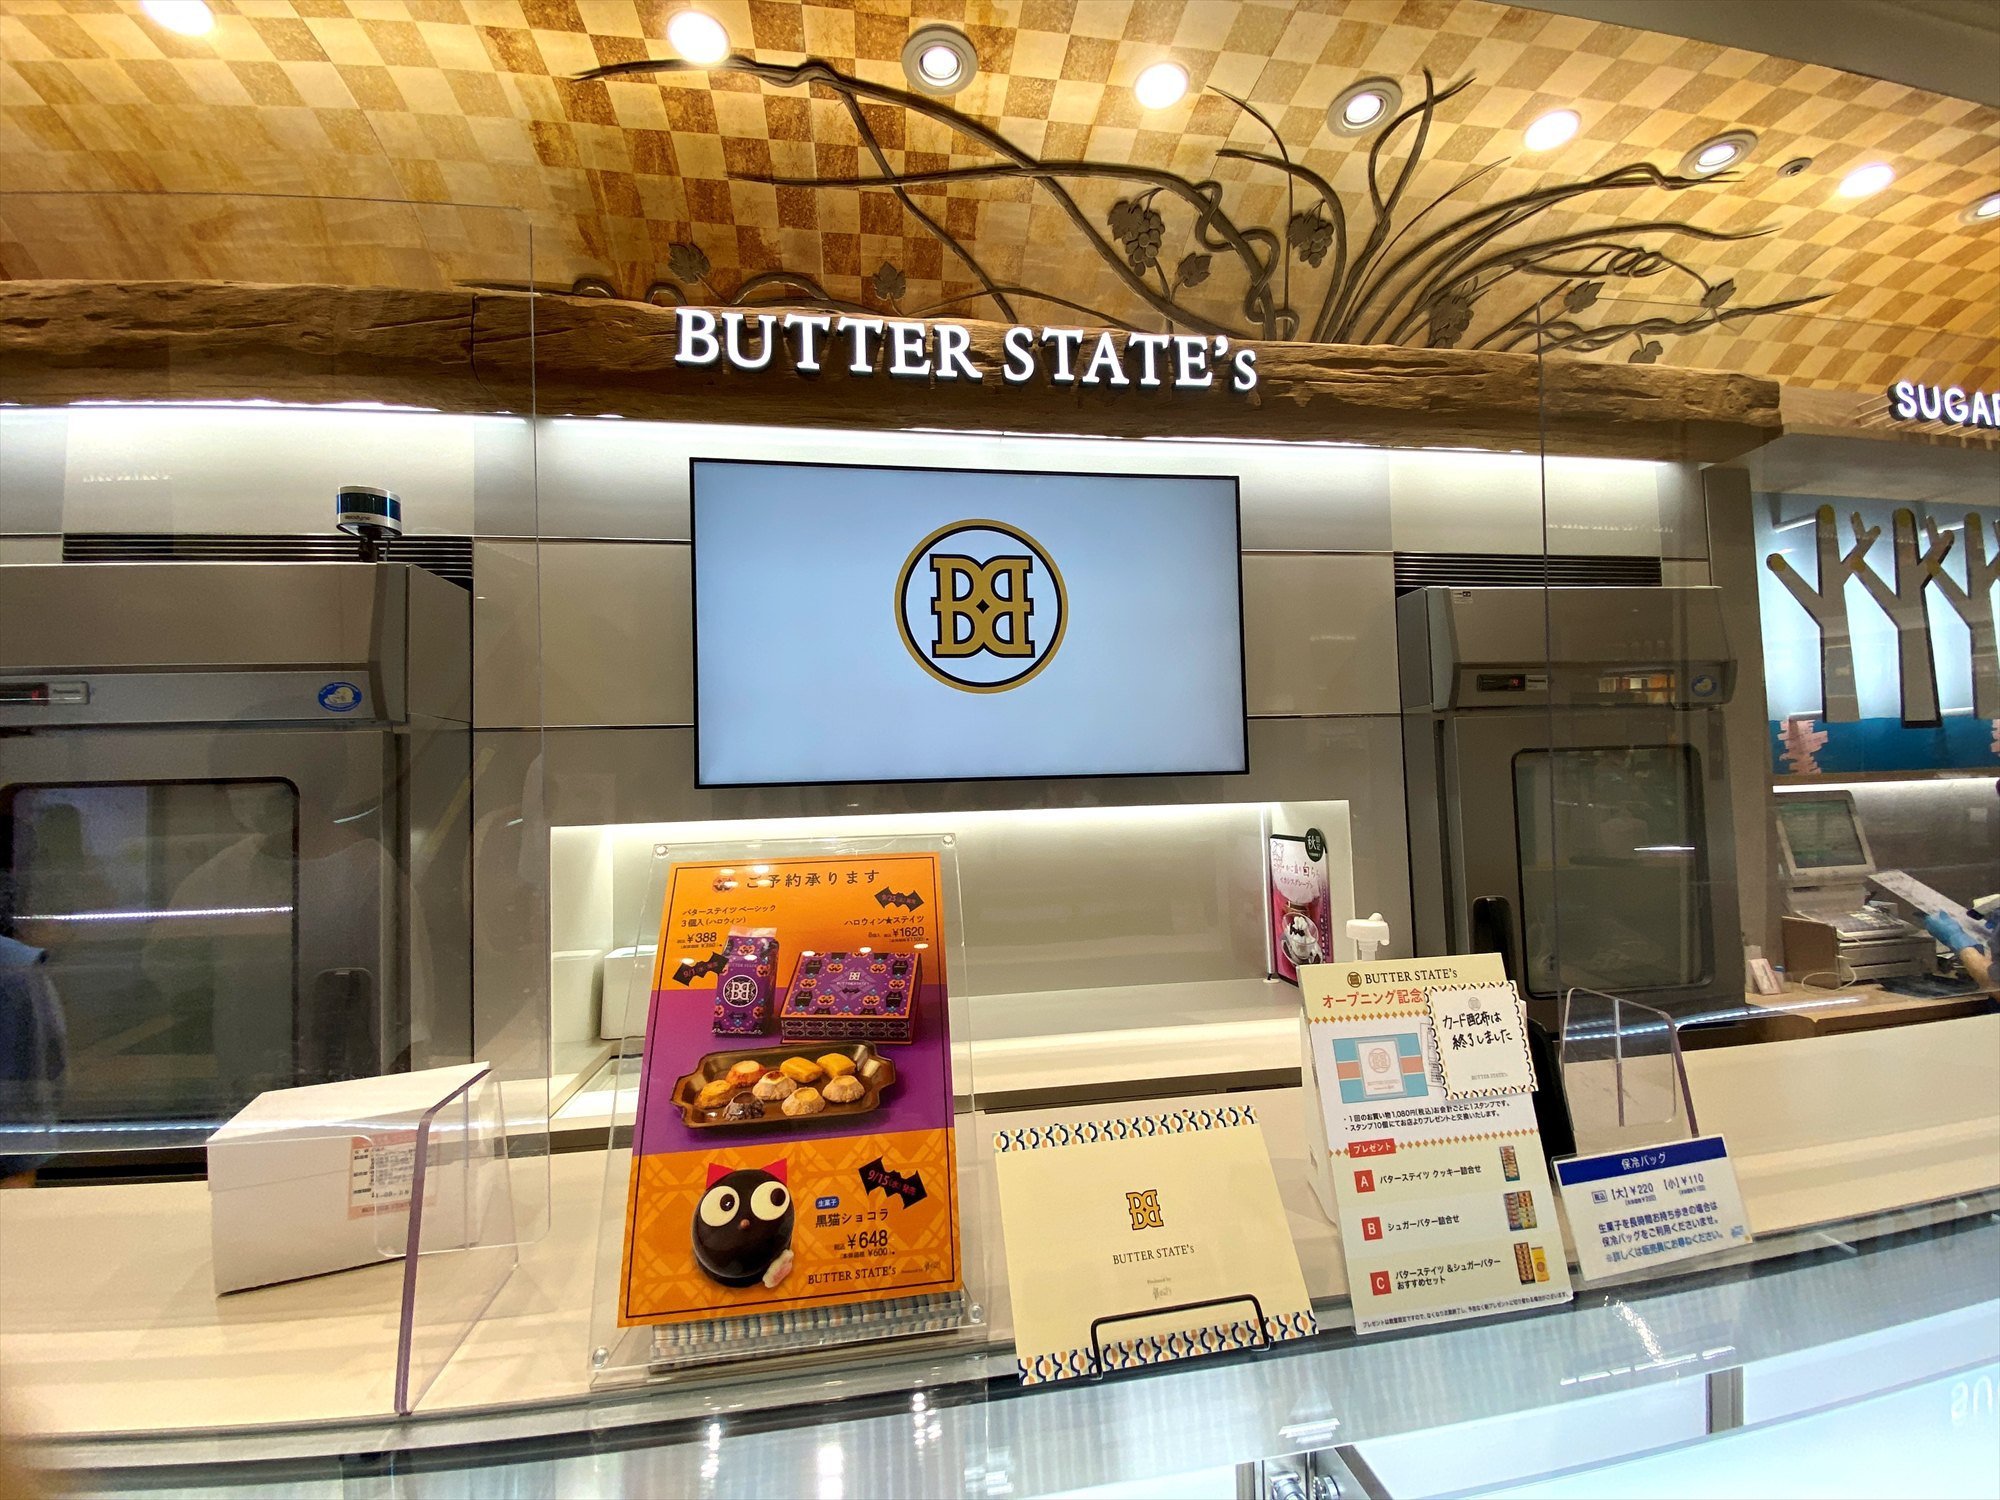 BUTTER STATE's